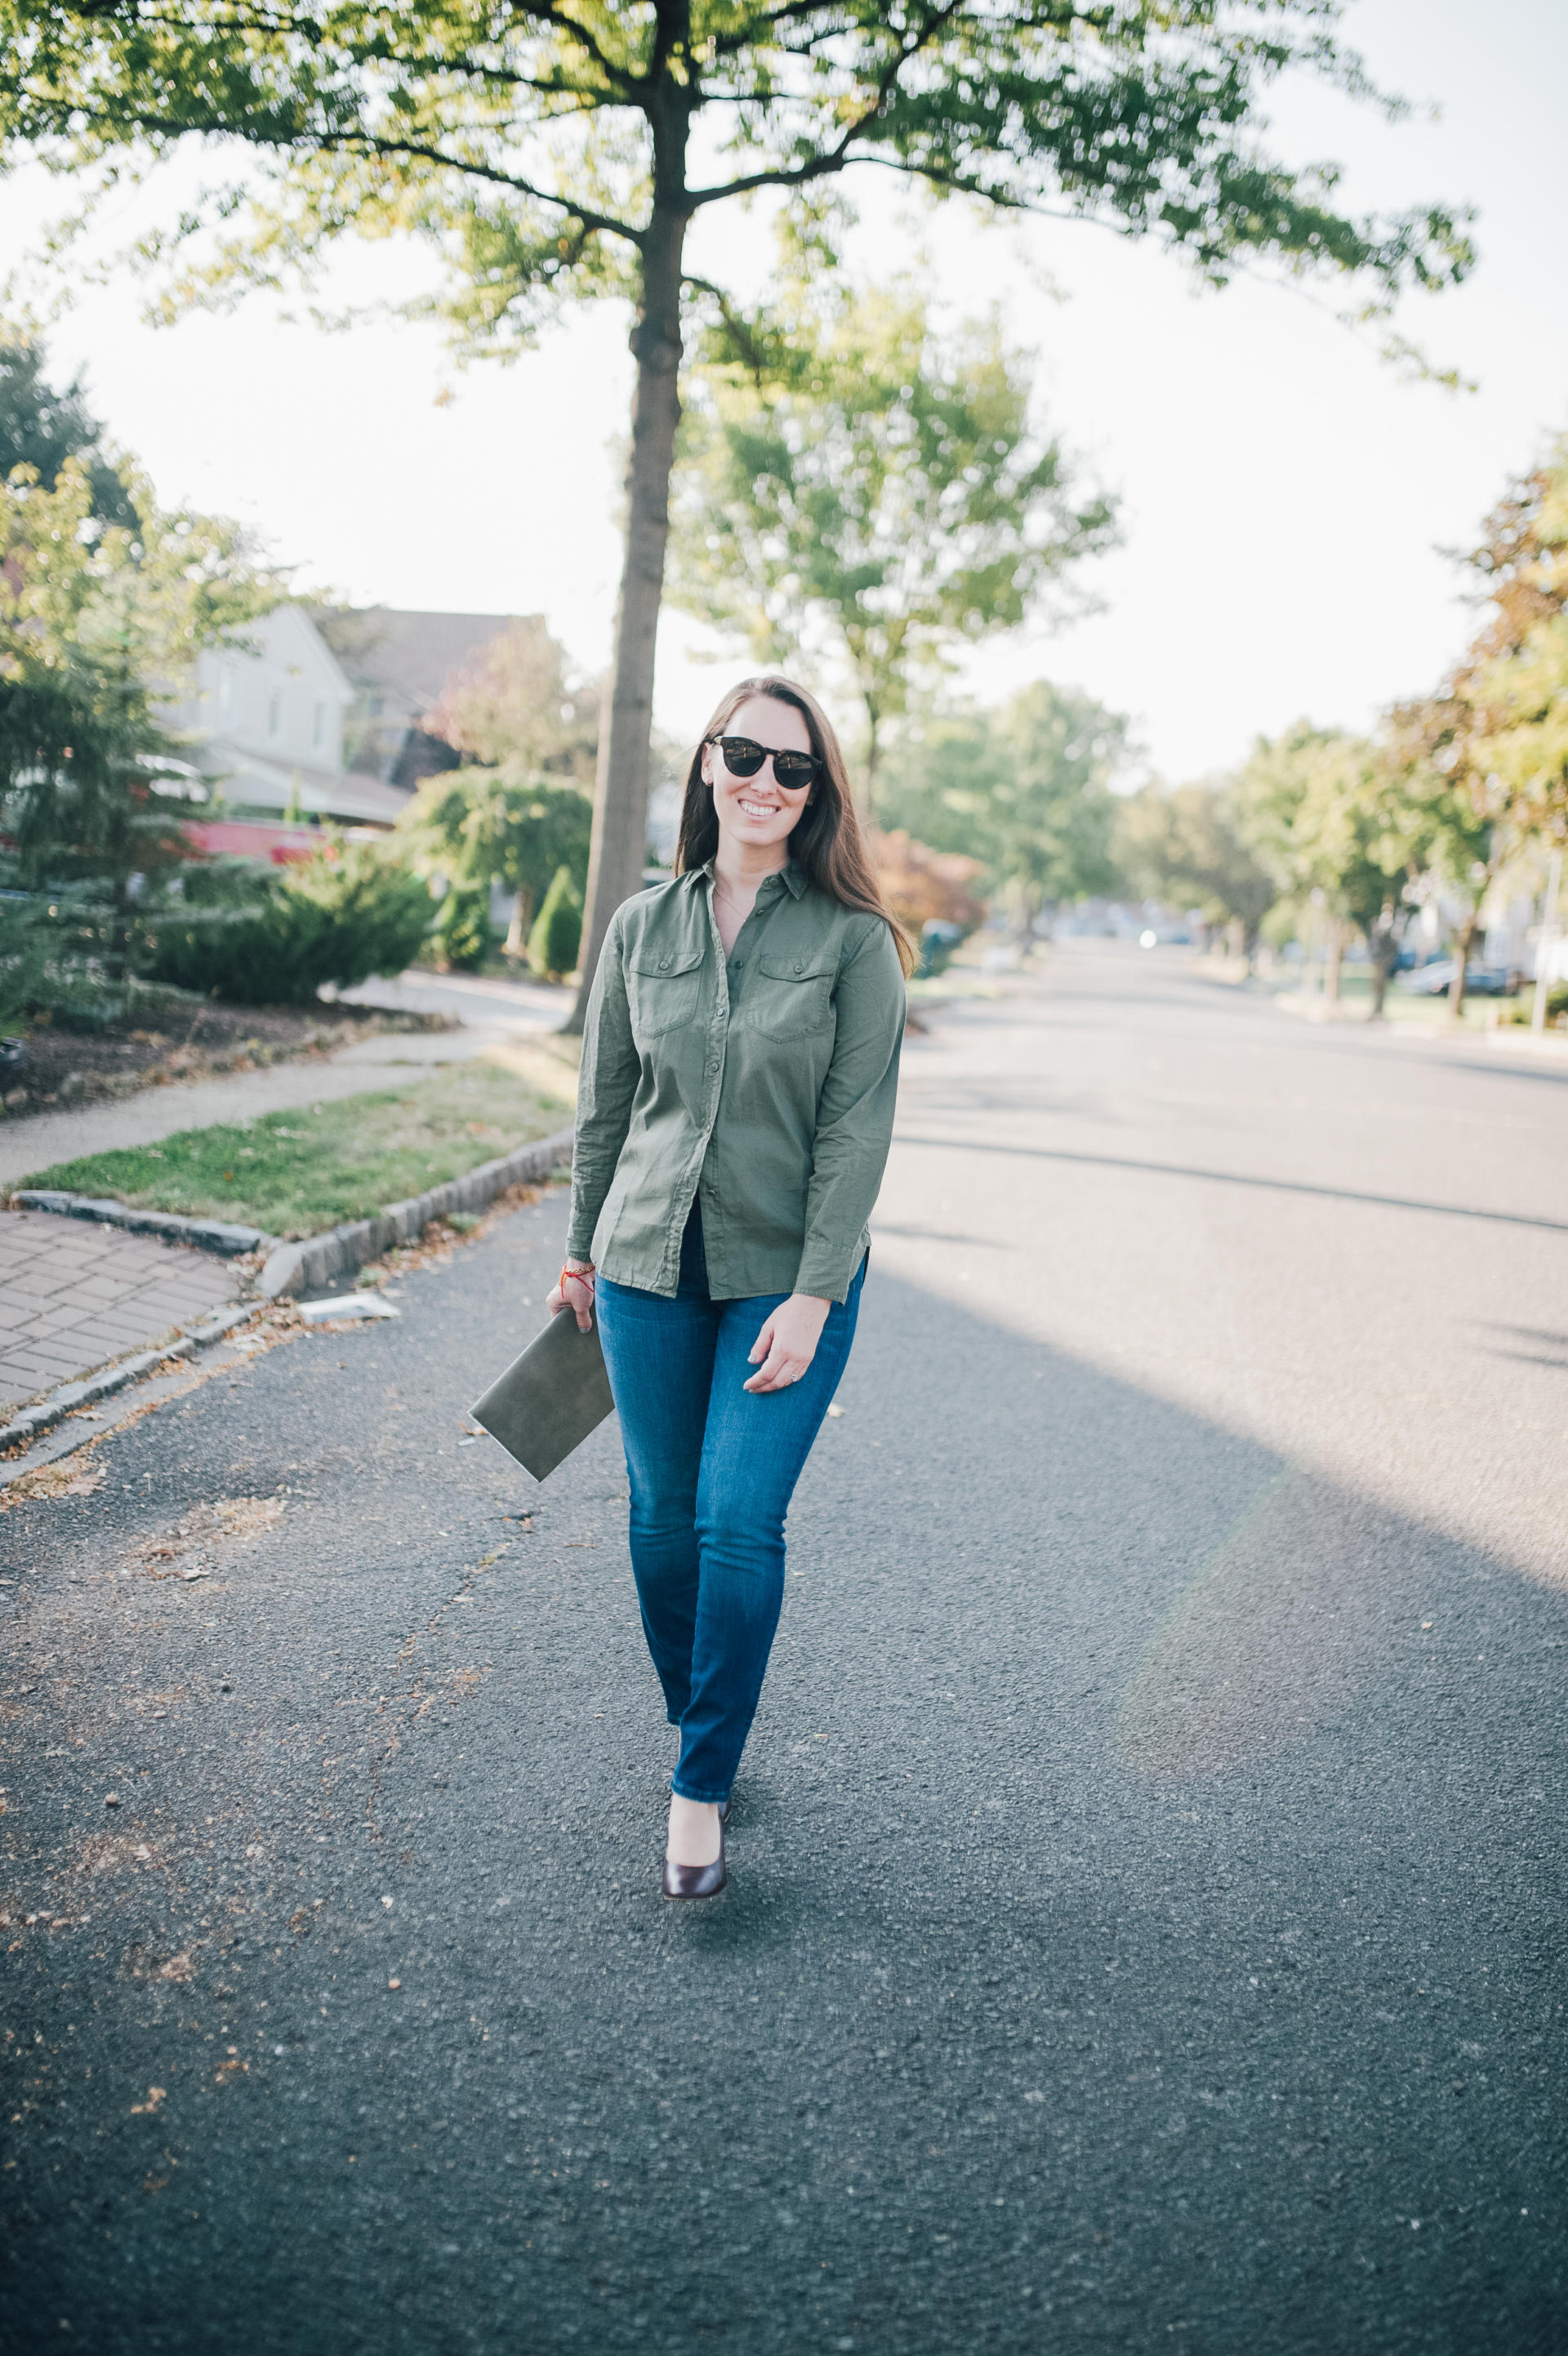 STYLE: Olive You - Trendy Olive Outfit by New Jersey fashion blogger What's For Dinner Esq.